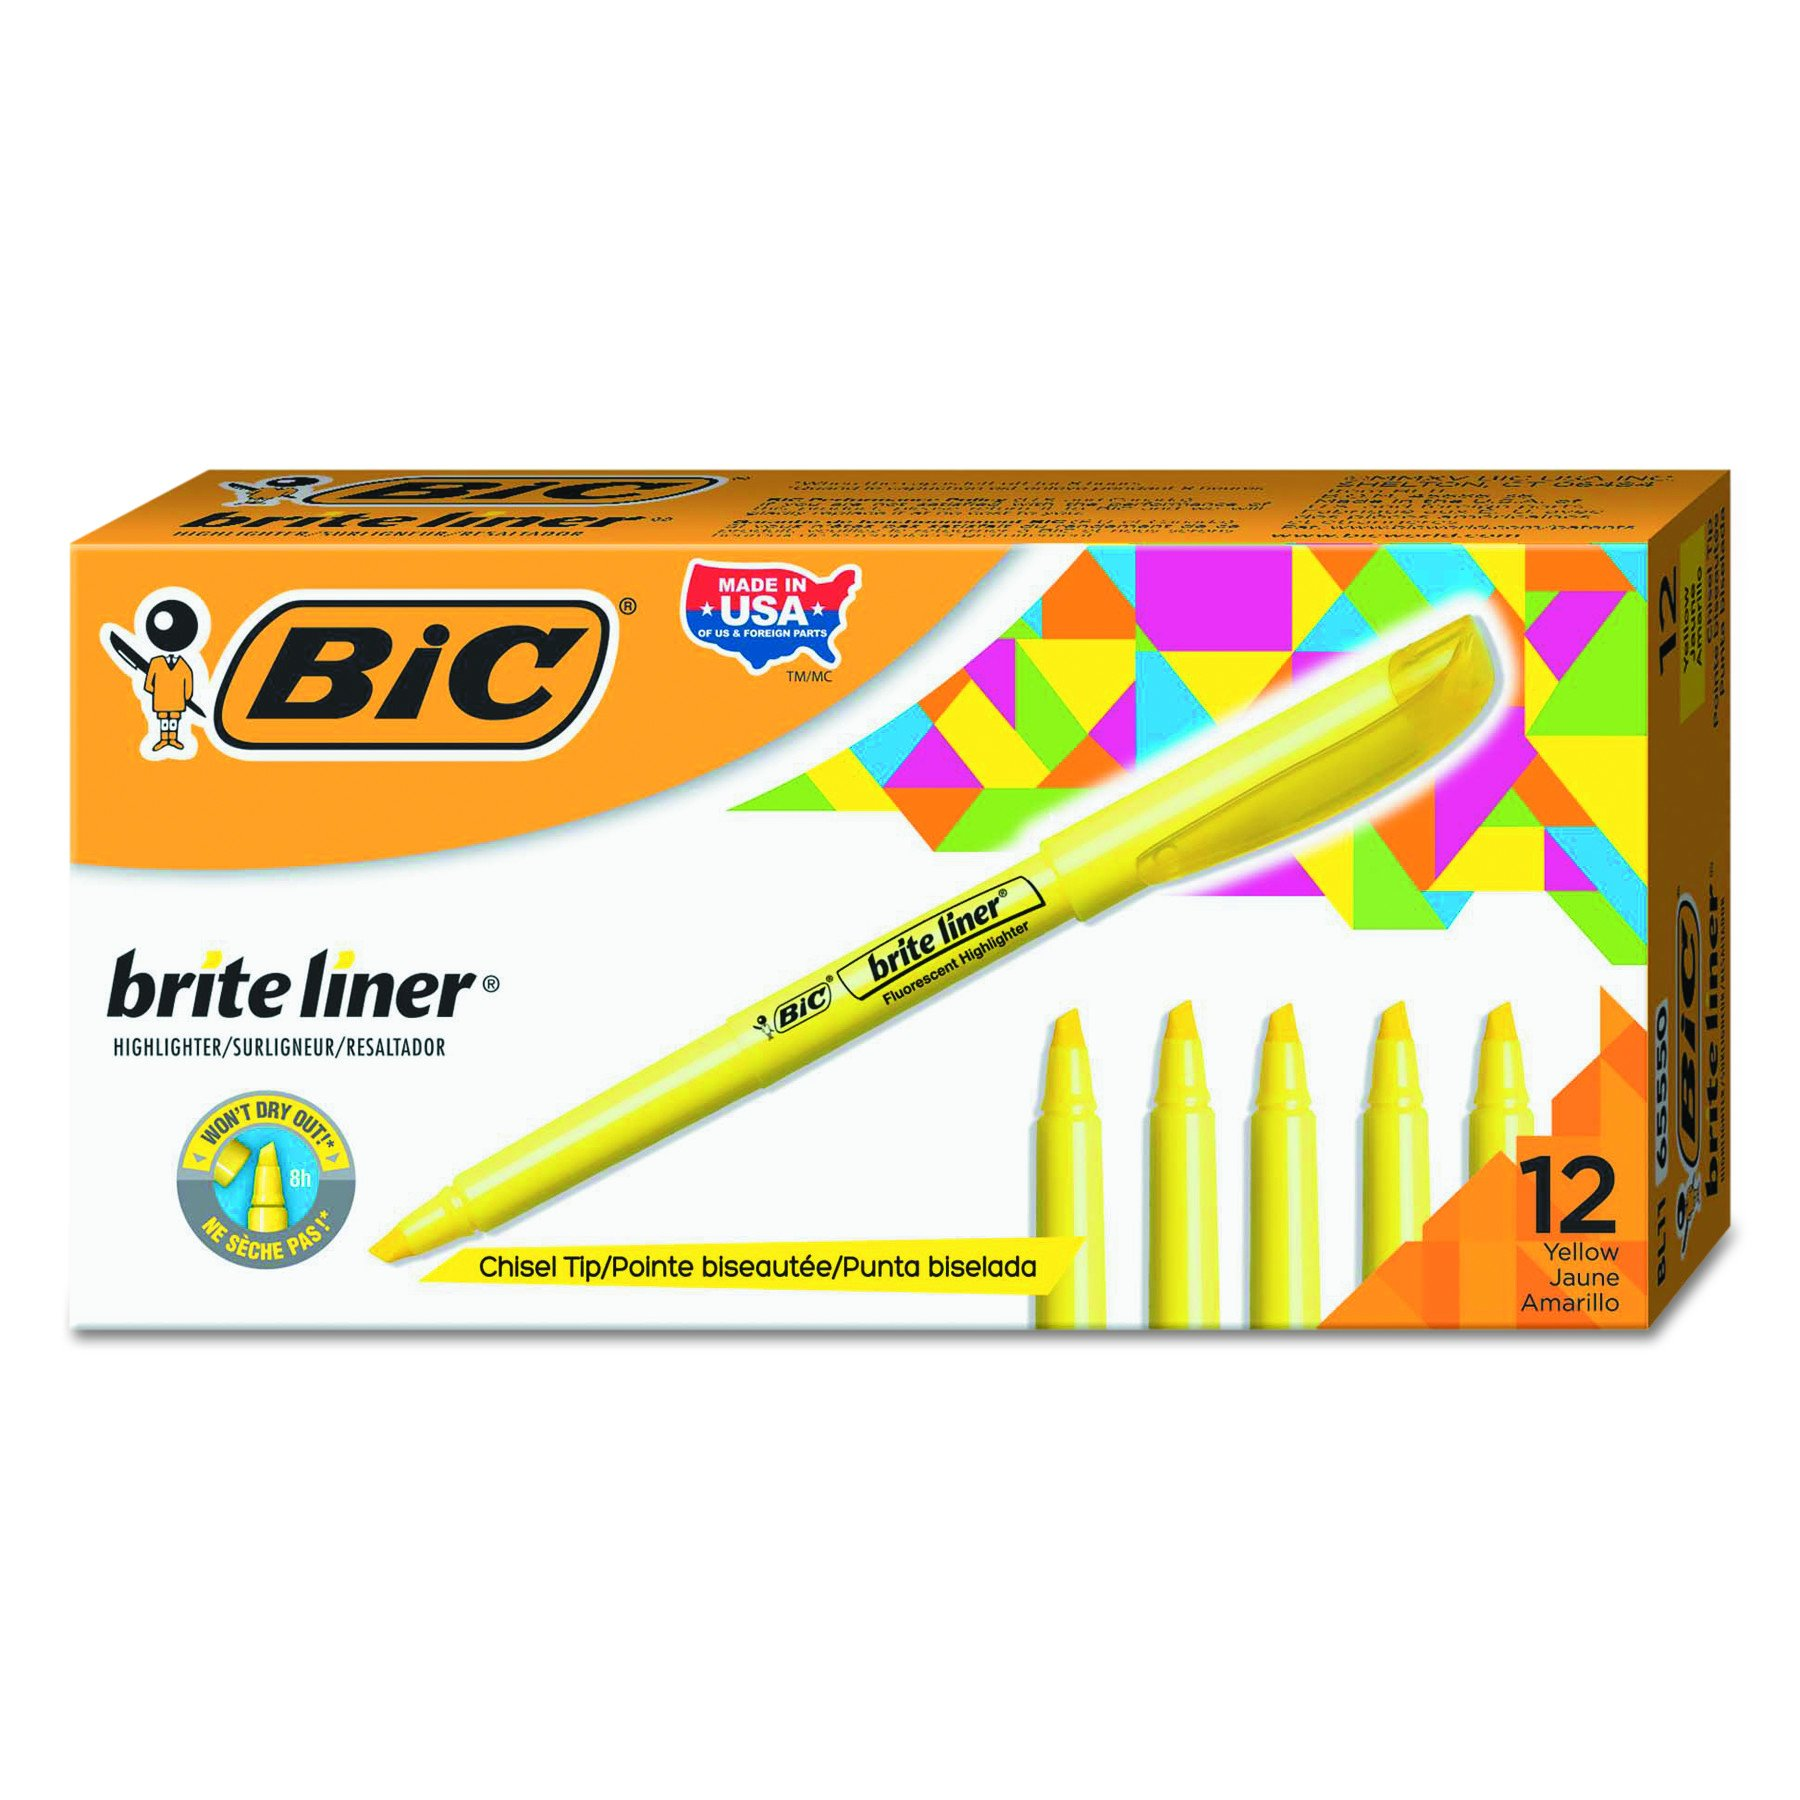 BIC Brite Liner Highlighter, Chisel Tip, Yellow, 12-Count by BIC (Image #1)